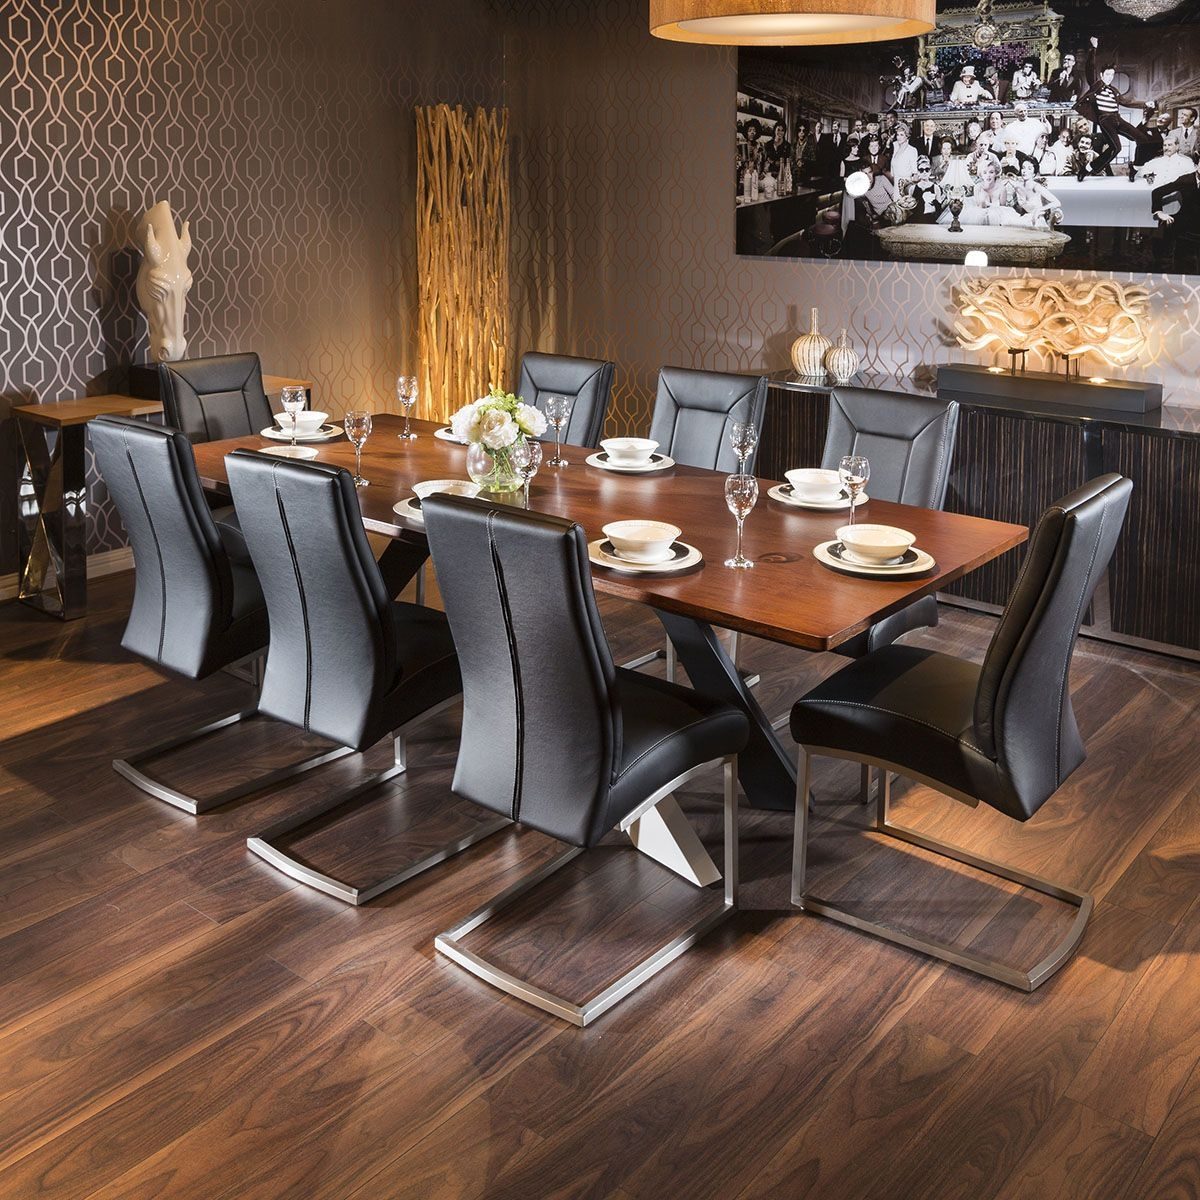 12 Person Dining Table Visualhunt, Large Dining Room Table Seats 12